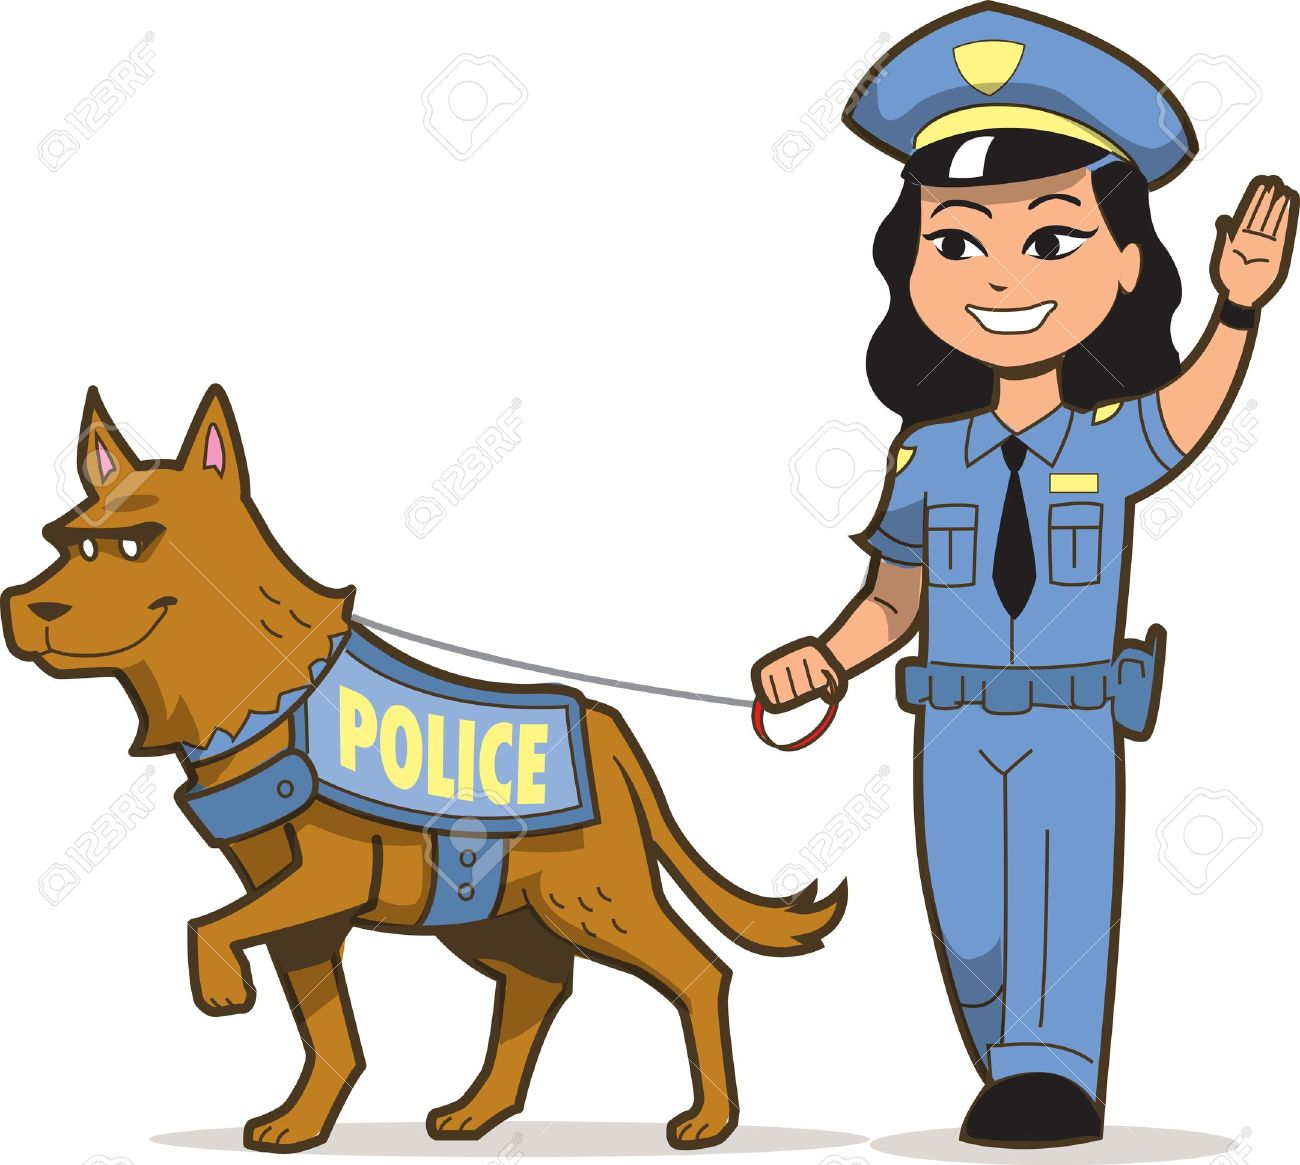 k 9 police dog and asian female police officer royalty free cliparts rh 123rf com police officer clip art and pictures police officer clip art black and white